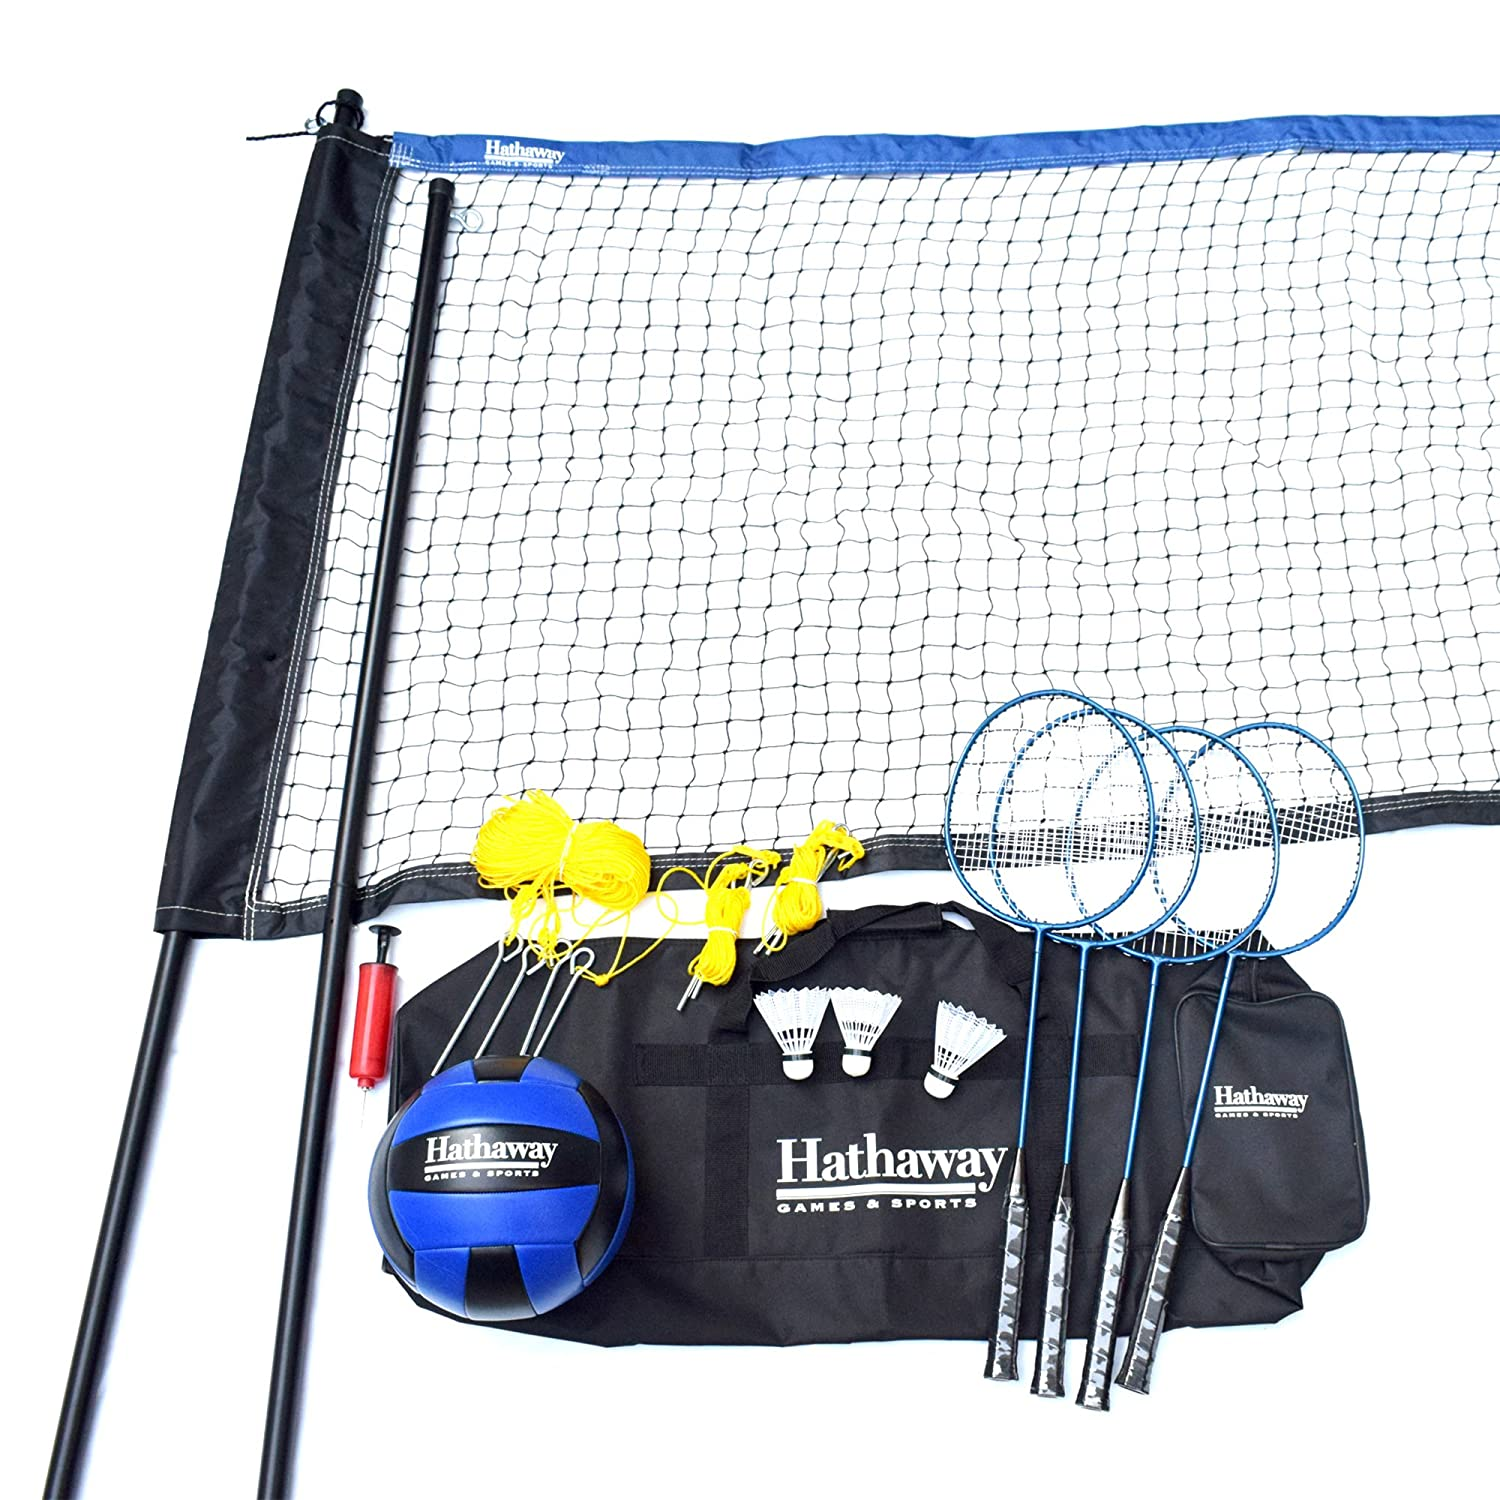 Hathaway Volleyball/Badminton Complete Combo Set White Blue Wave Products - sporting goods BG3141